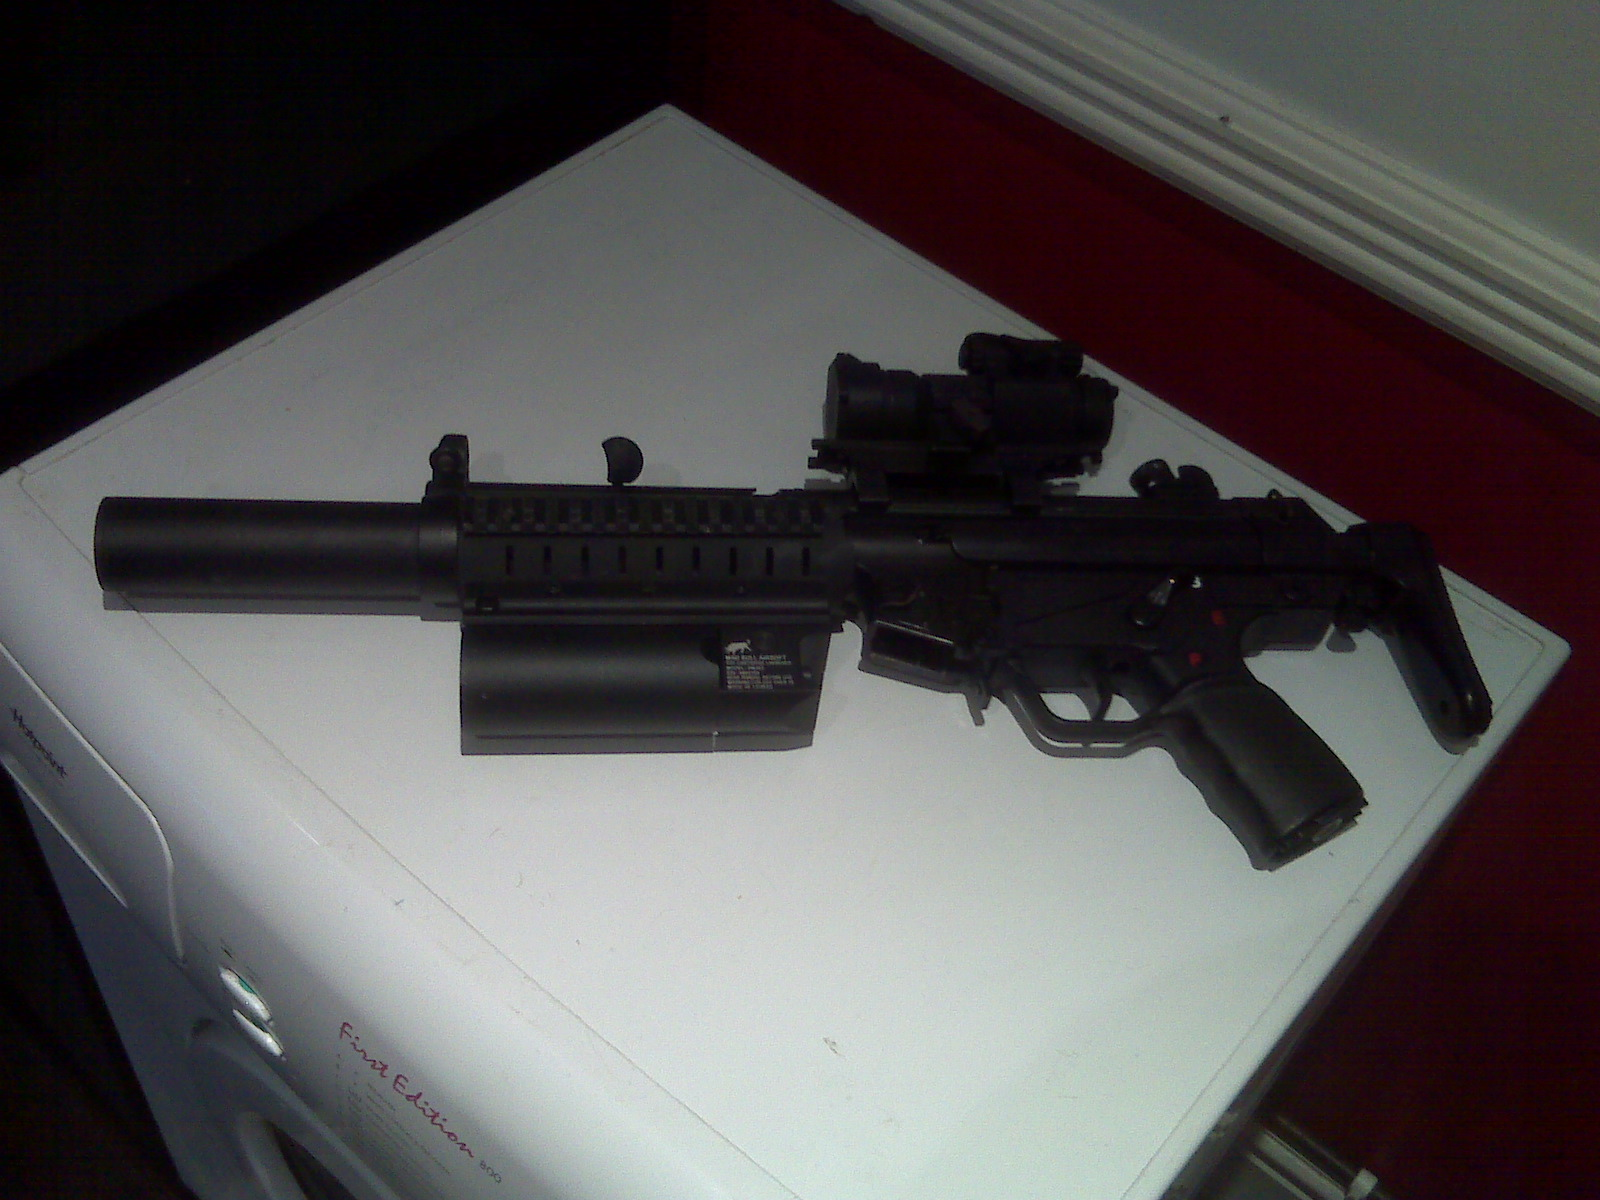 Mp5 Airsoft Rifle With Grenade Launcher And Glock Pistol